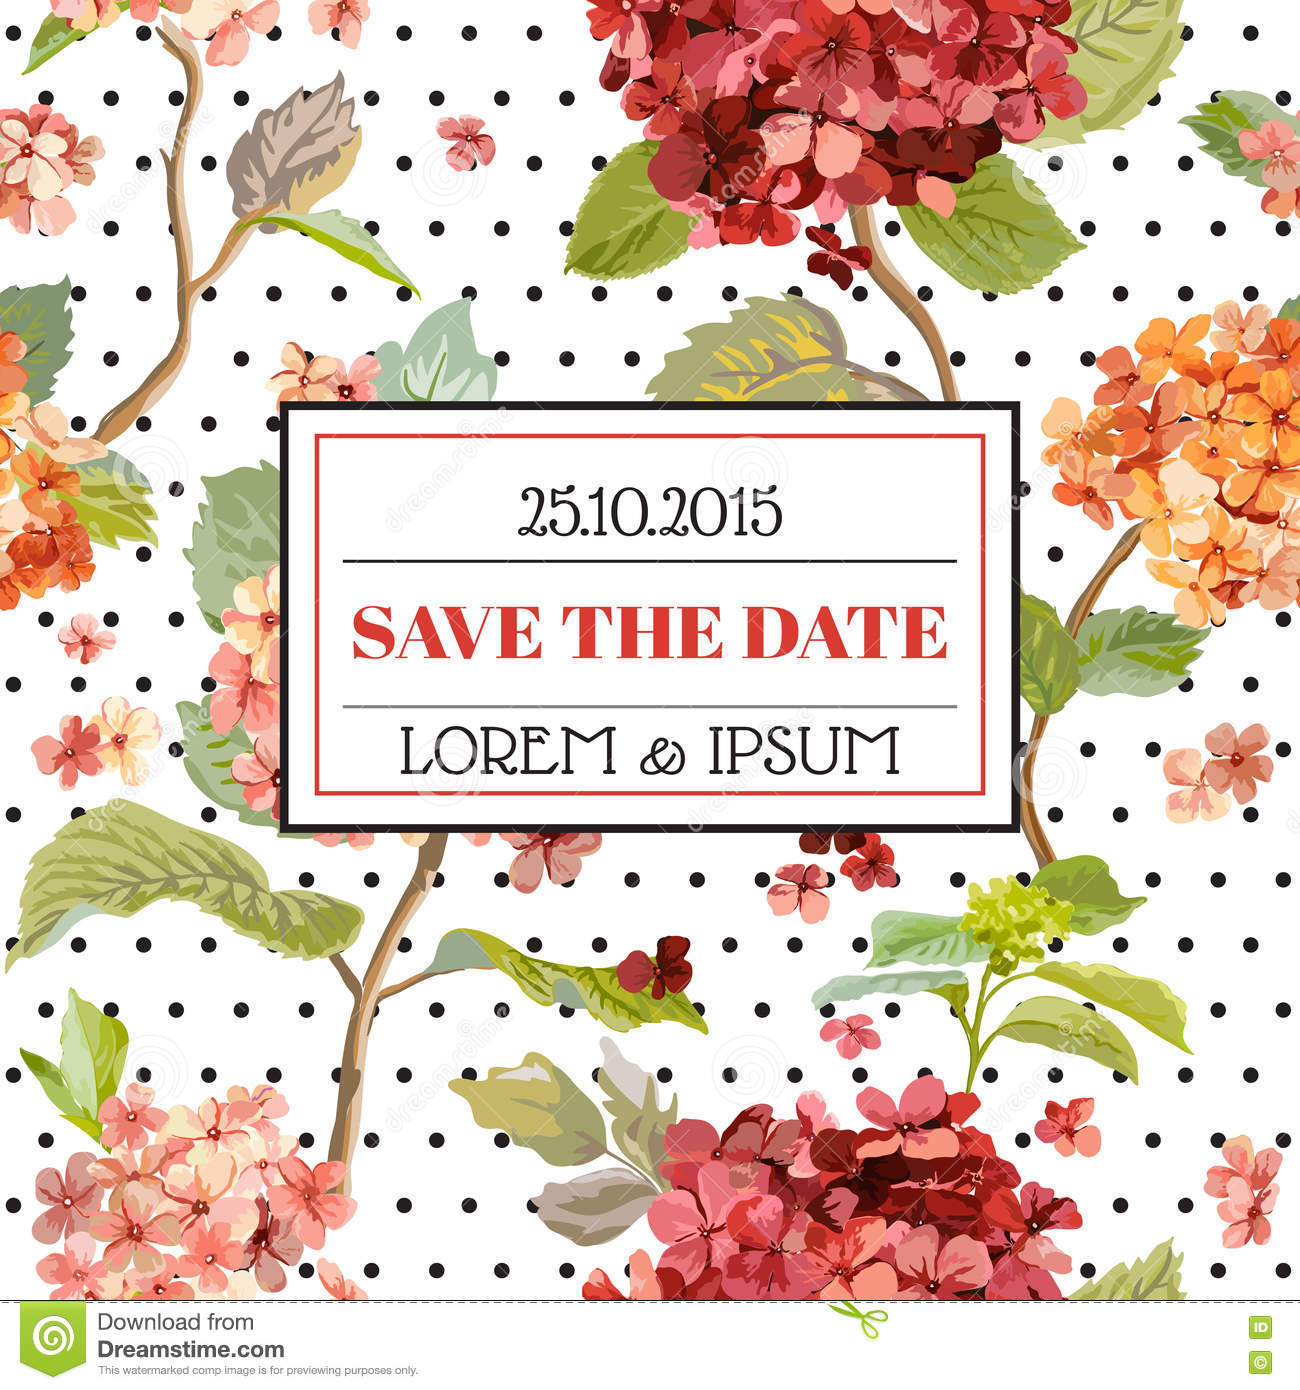 save the date floral hortensia autumn card vintage design stock